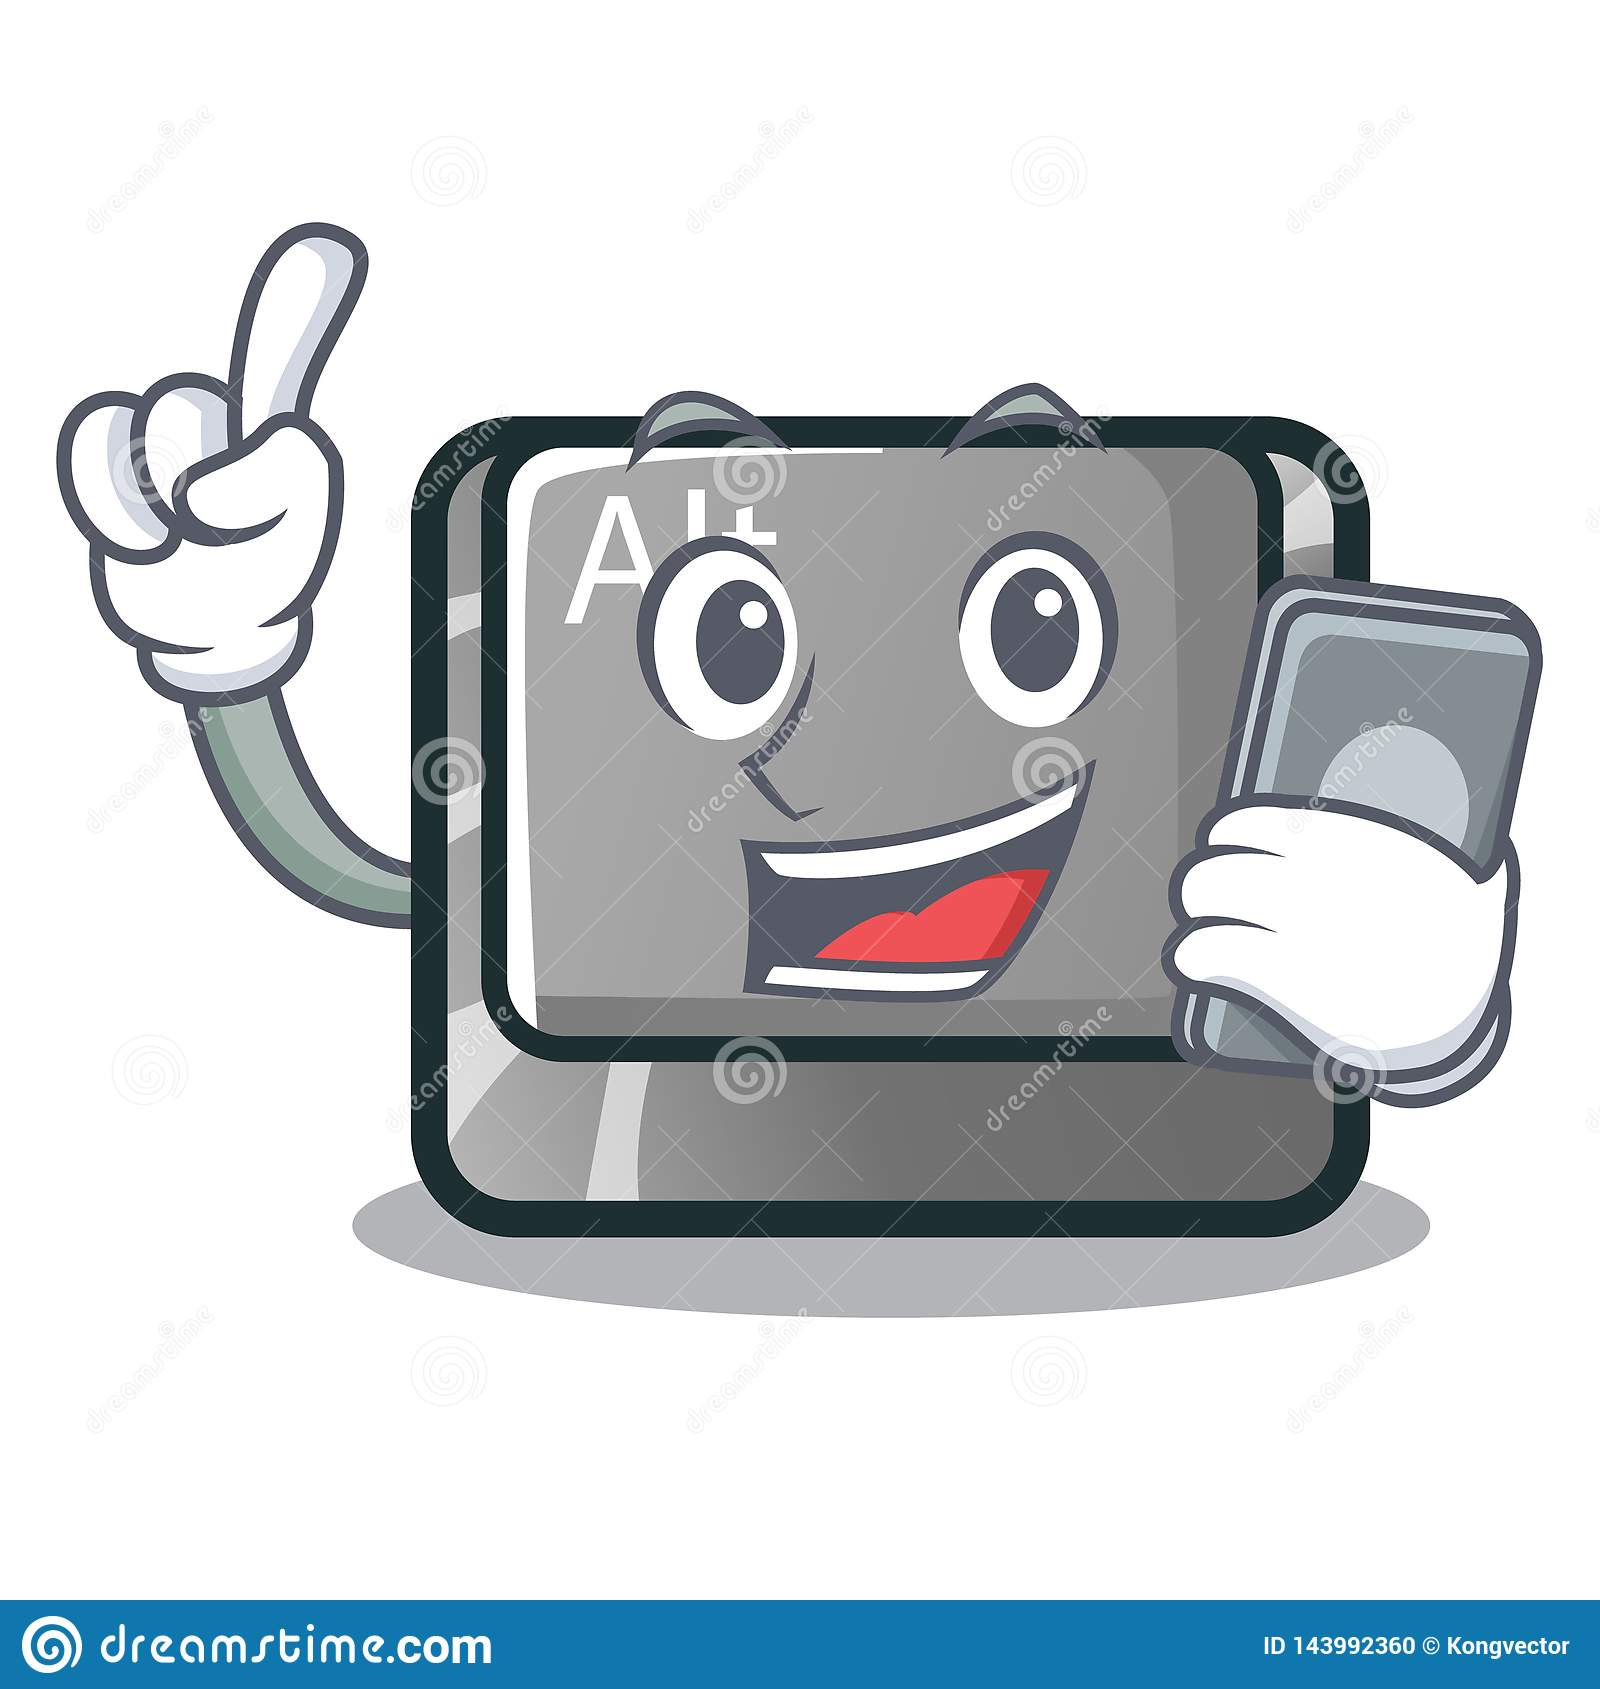 With phone alt button in the cartoon shape